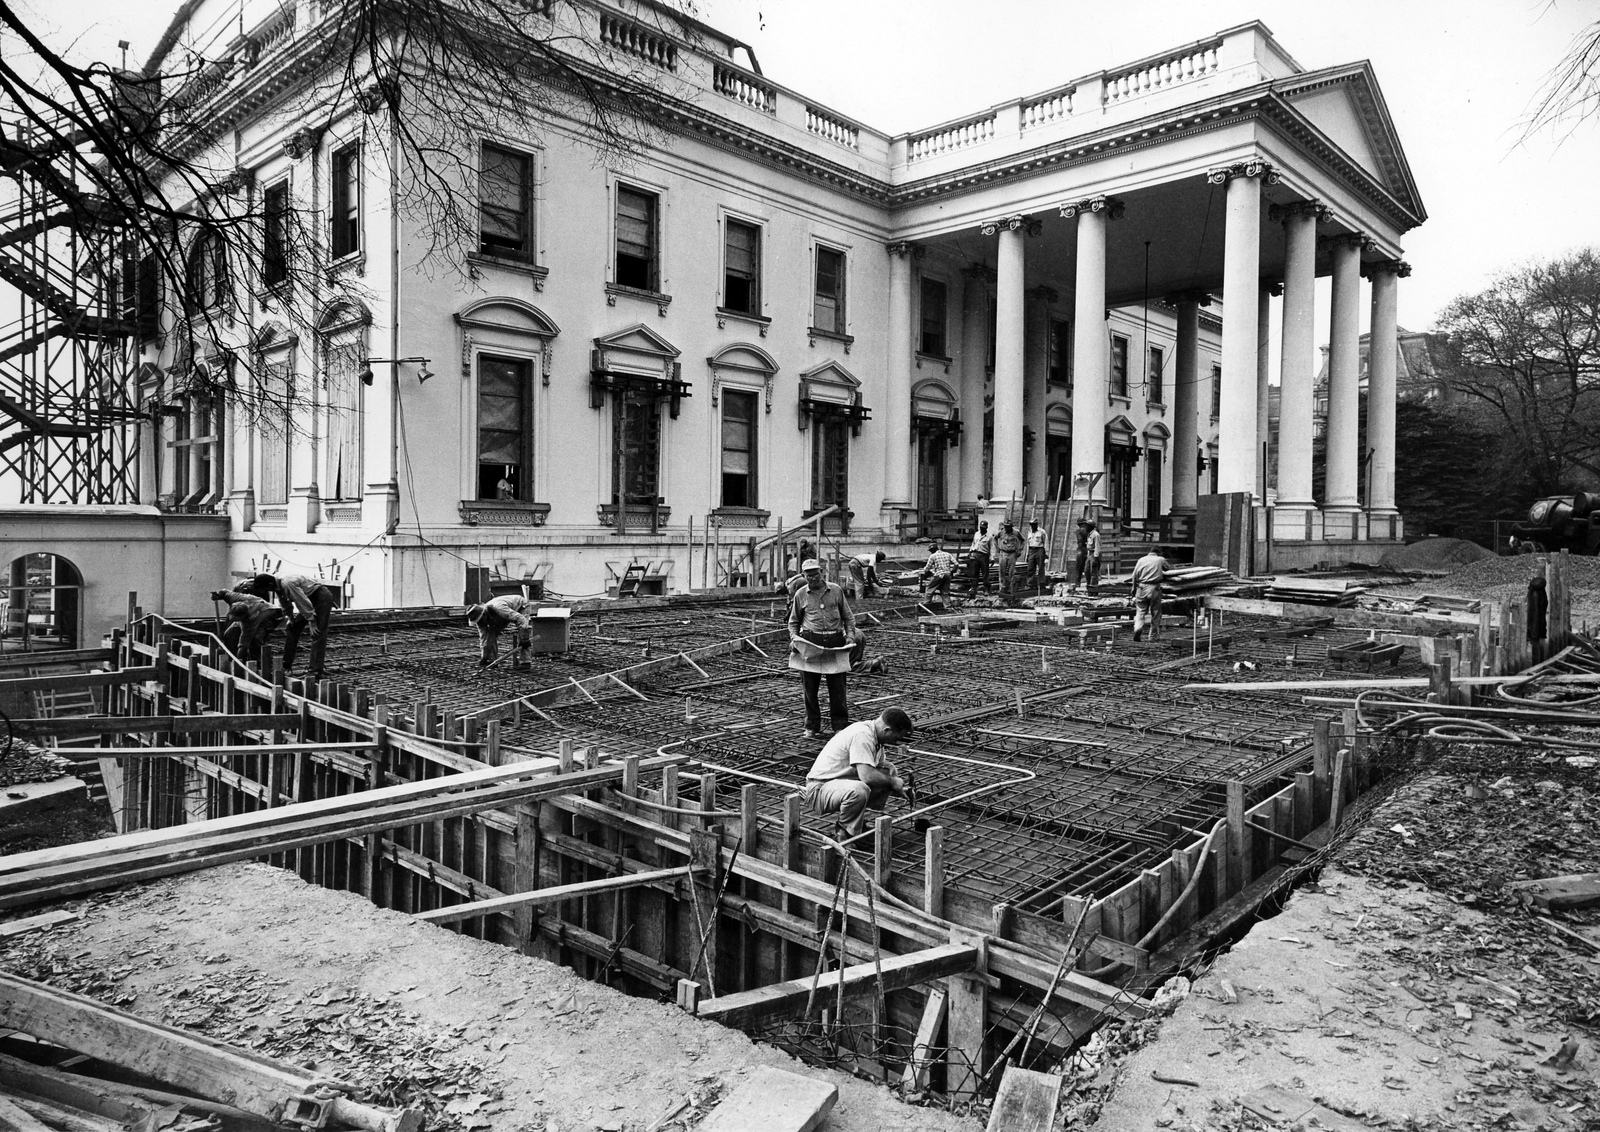 Fascinating Photos Of The White House Being Gutted And